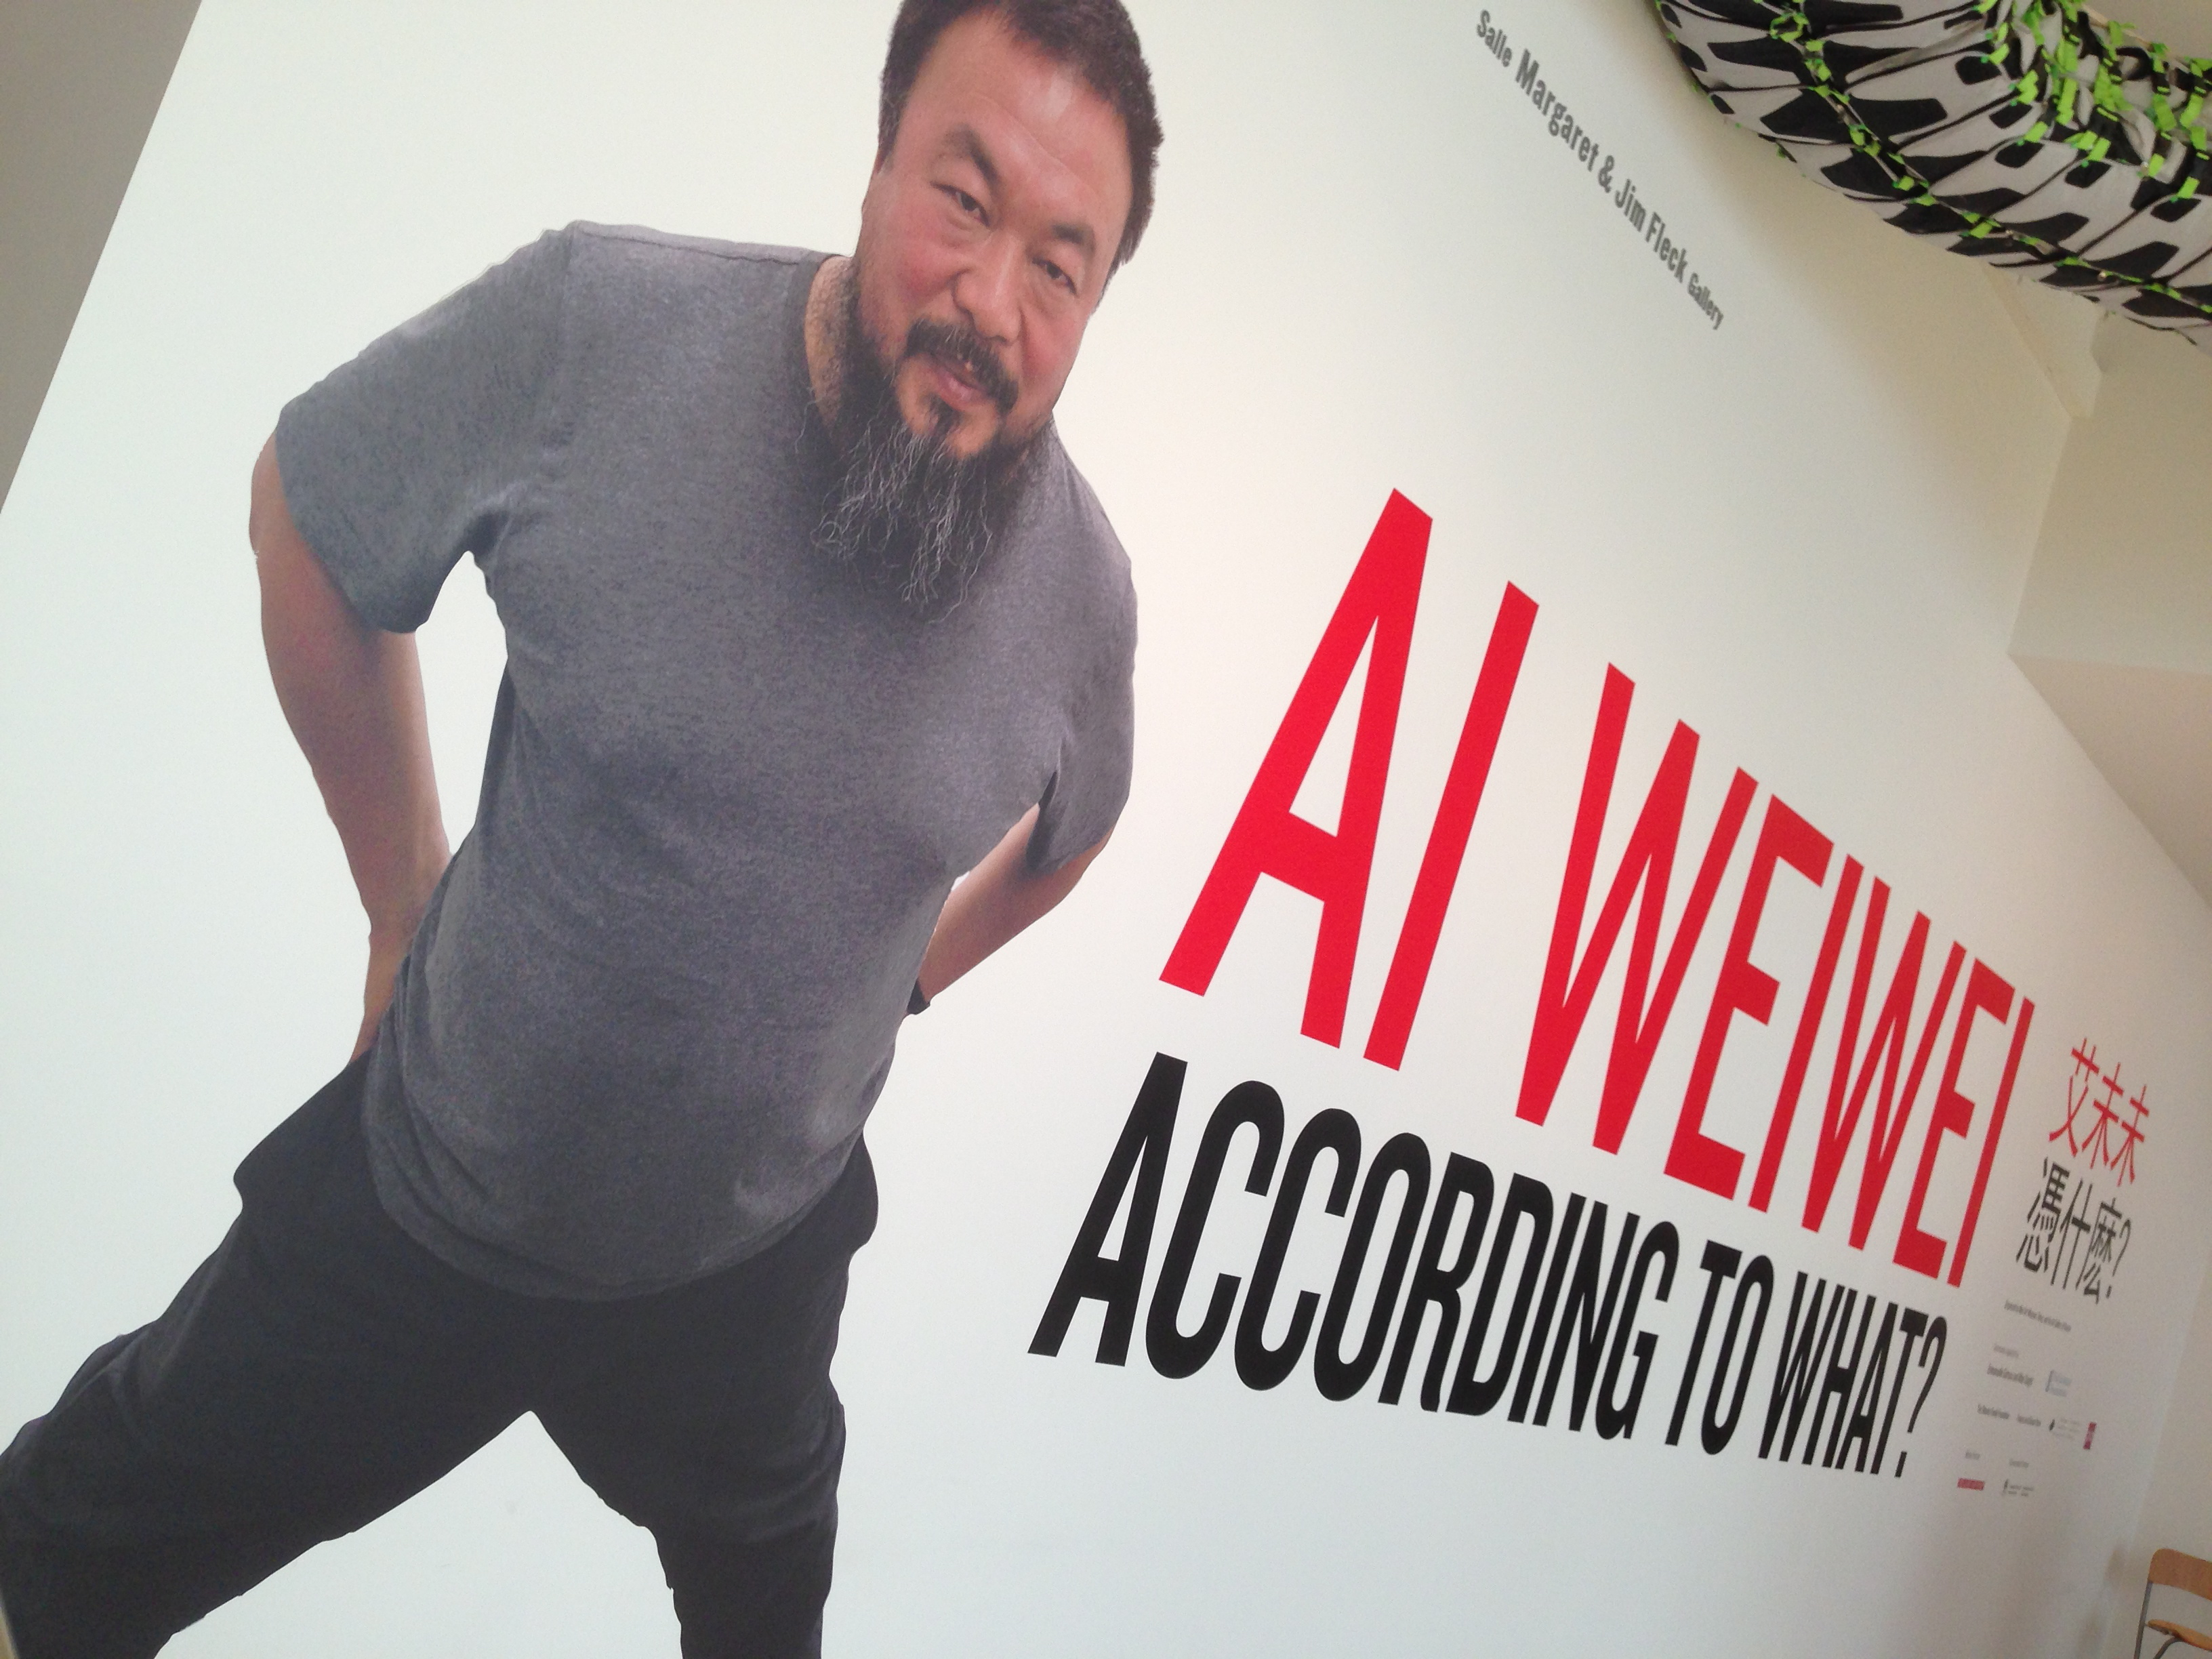 Ai Weiwei: According to What?